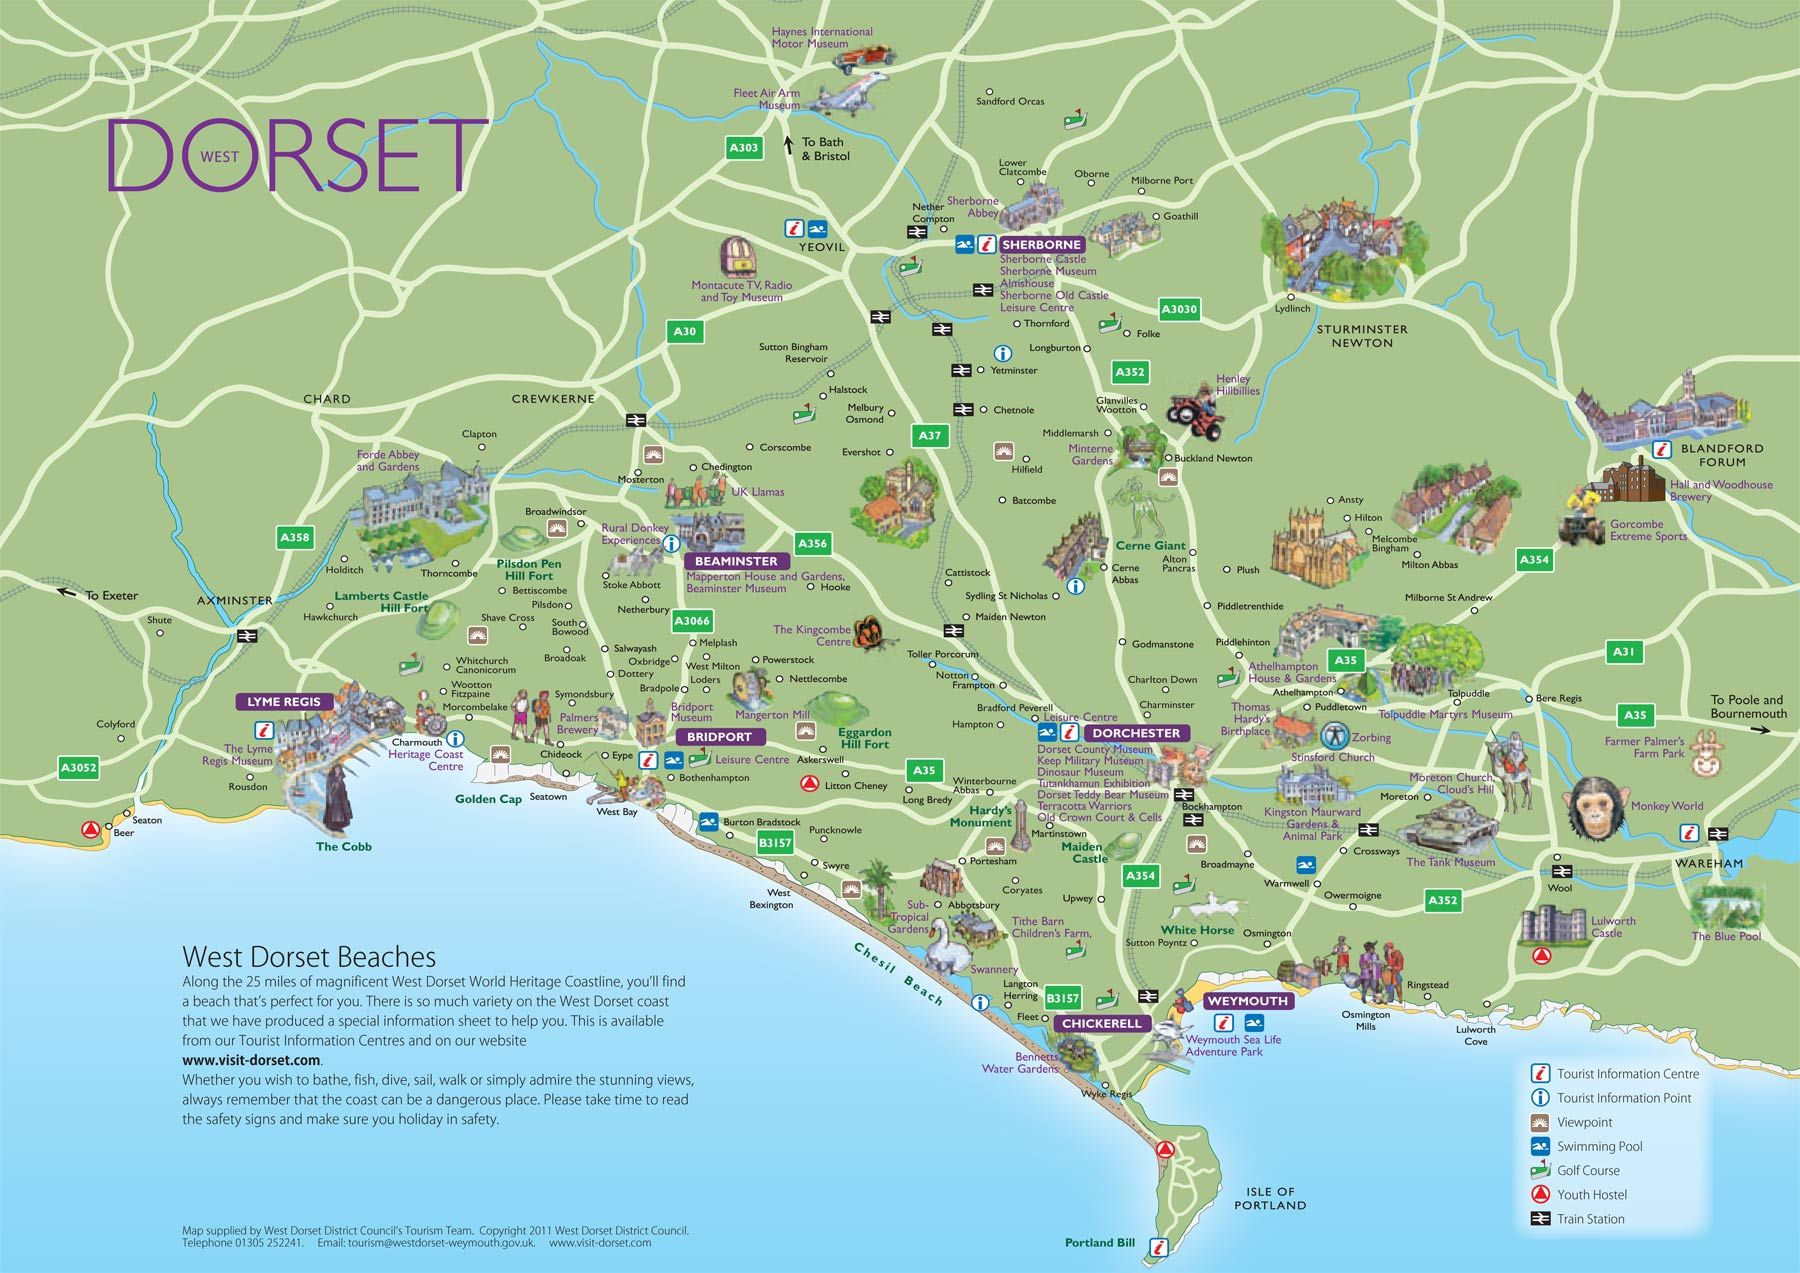 Map Of England Jurassic Coast.Pin By Strongspear On England Dorset In 2019 Dorset Map Dorset